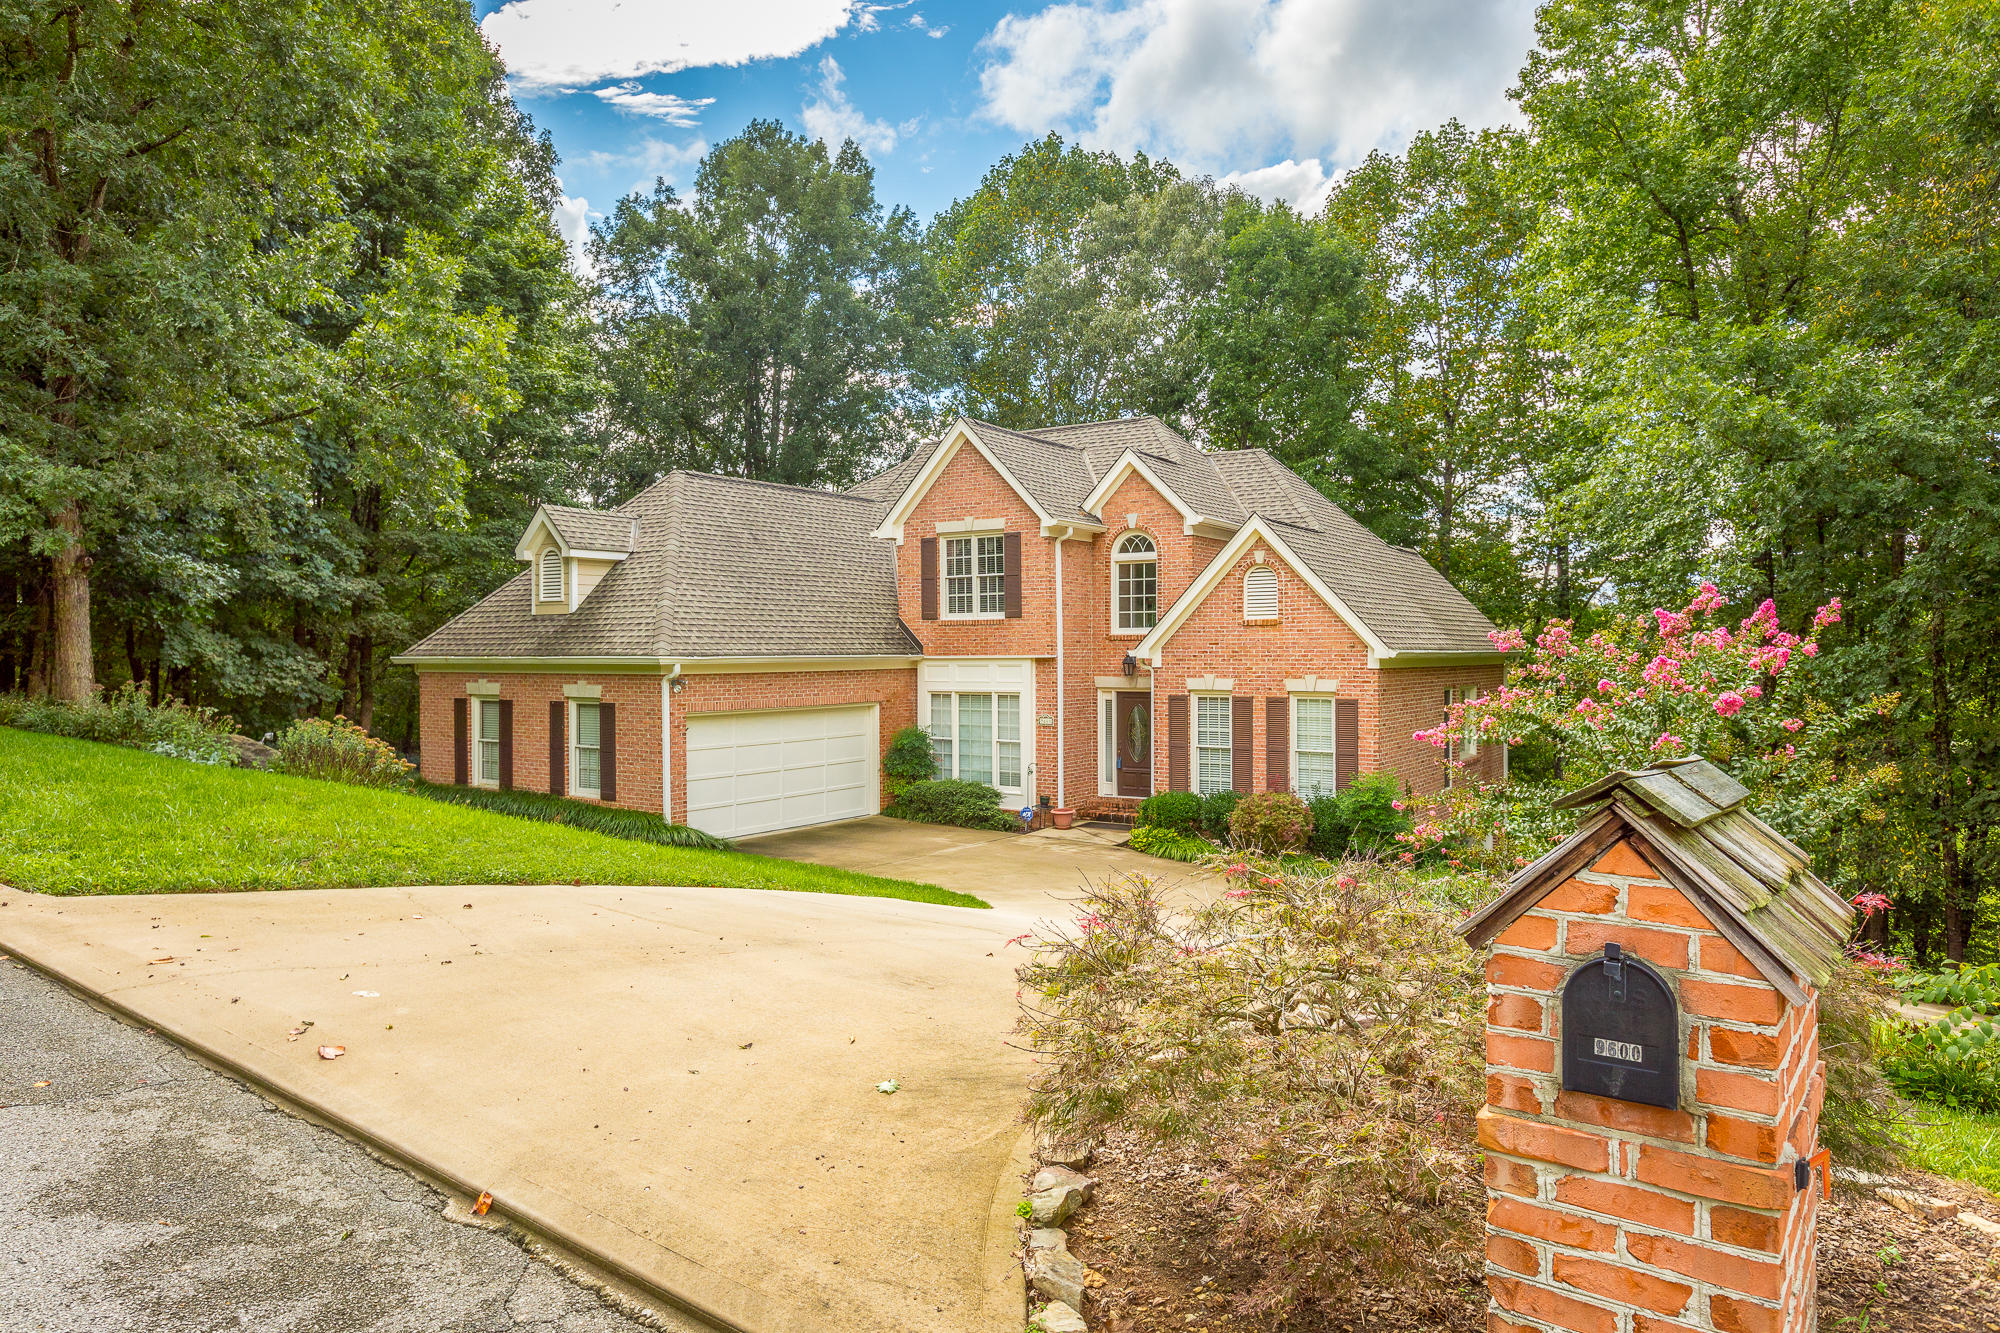 9600 Thornberry Dr, Ooltewah, TN 37363